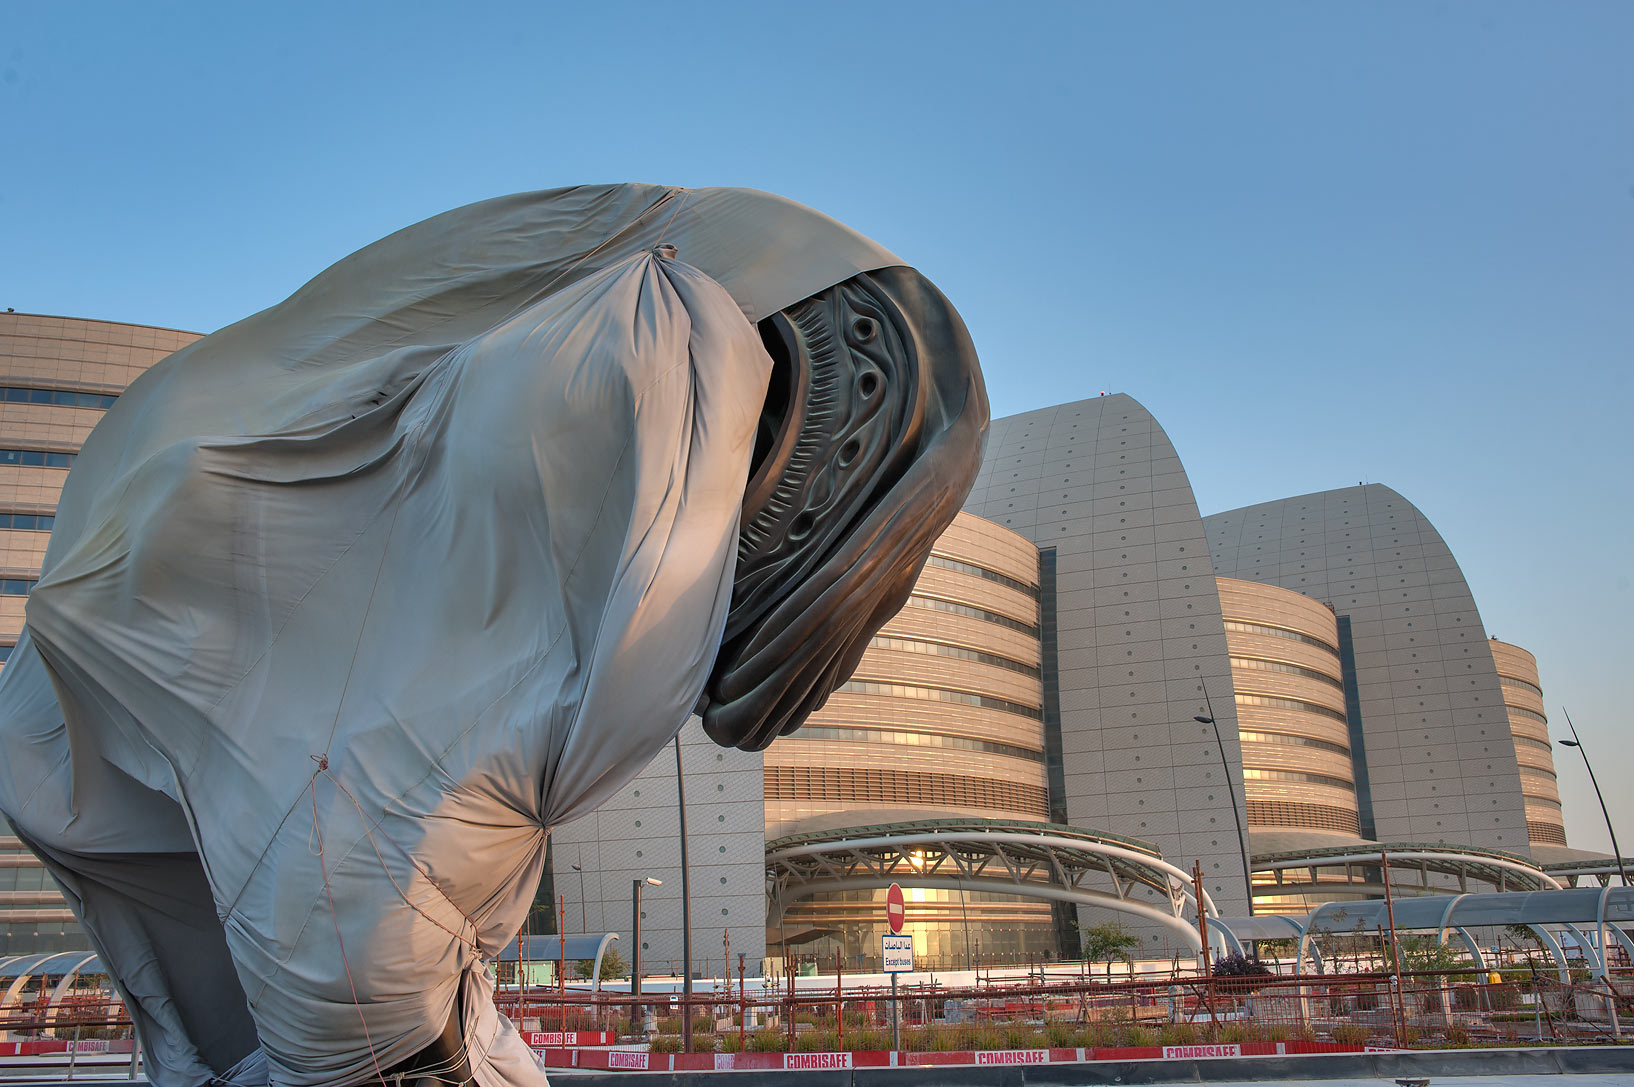 Fragment of a bronze fetus appearing from a bag...and Research Center. Doha, Qatar